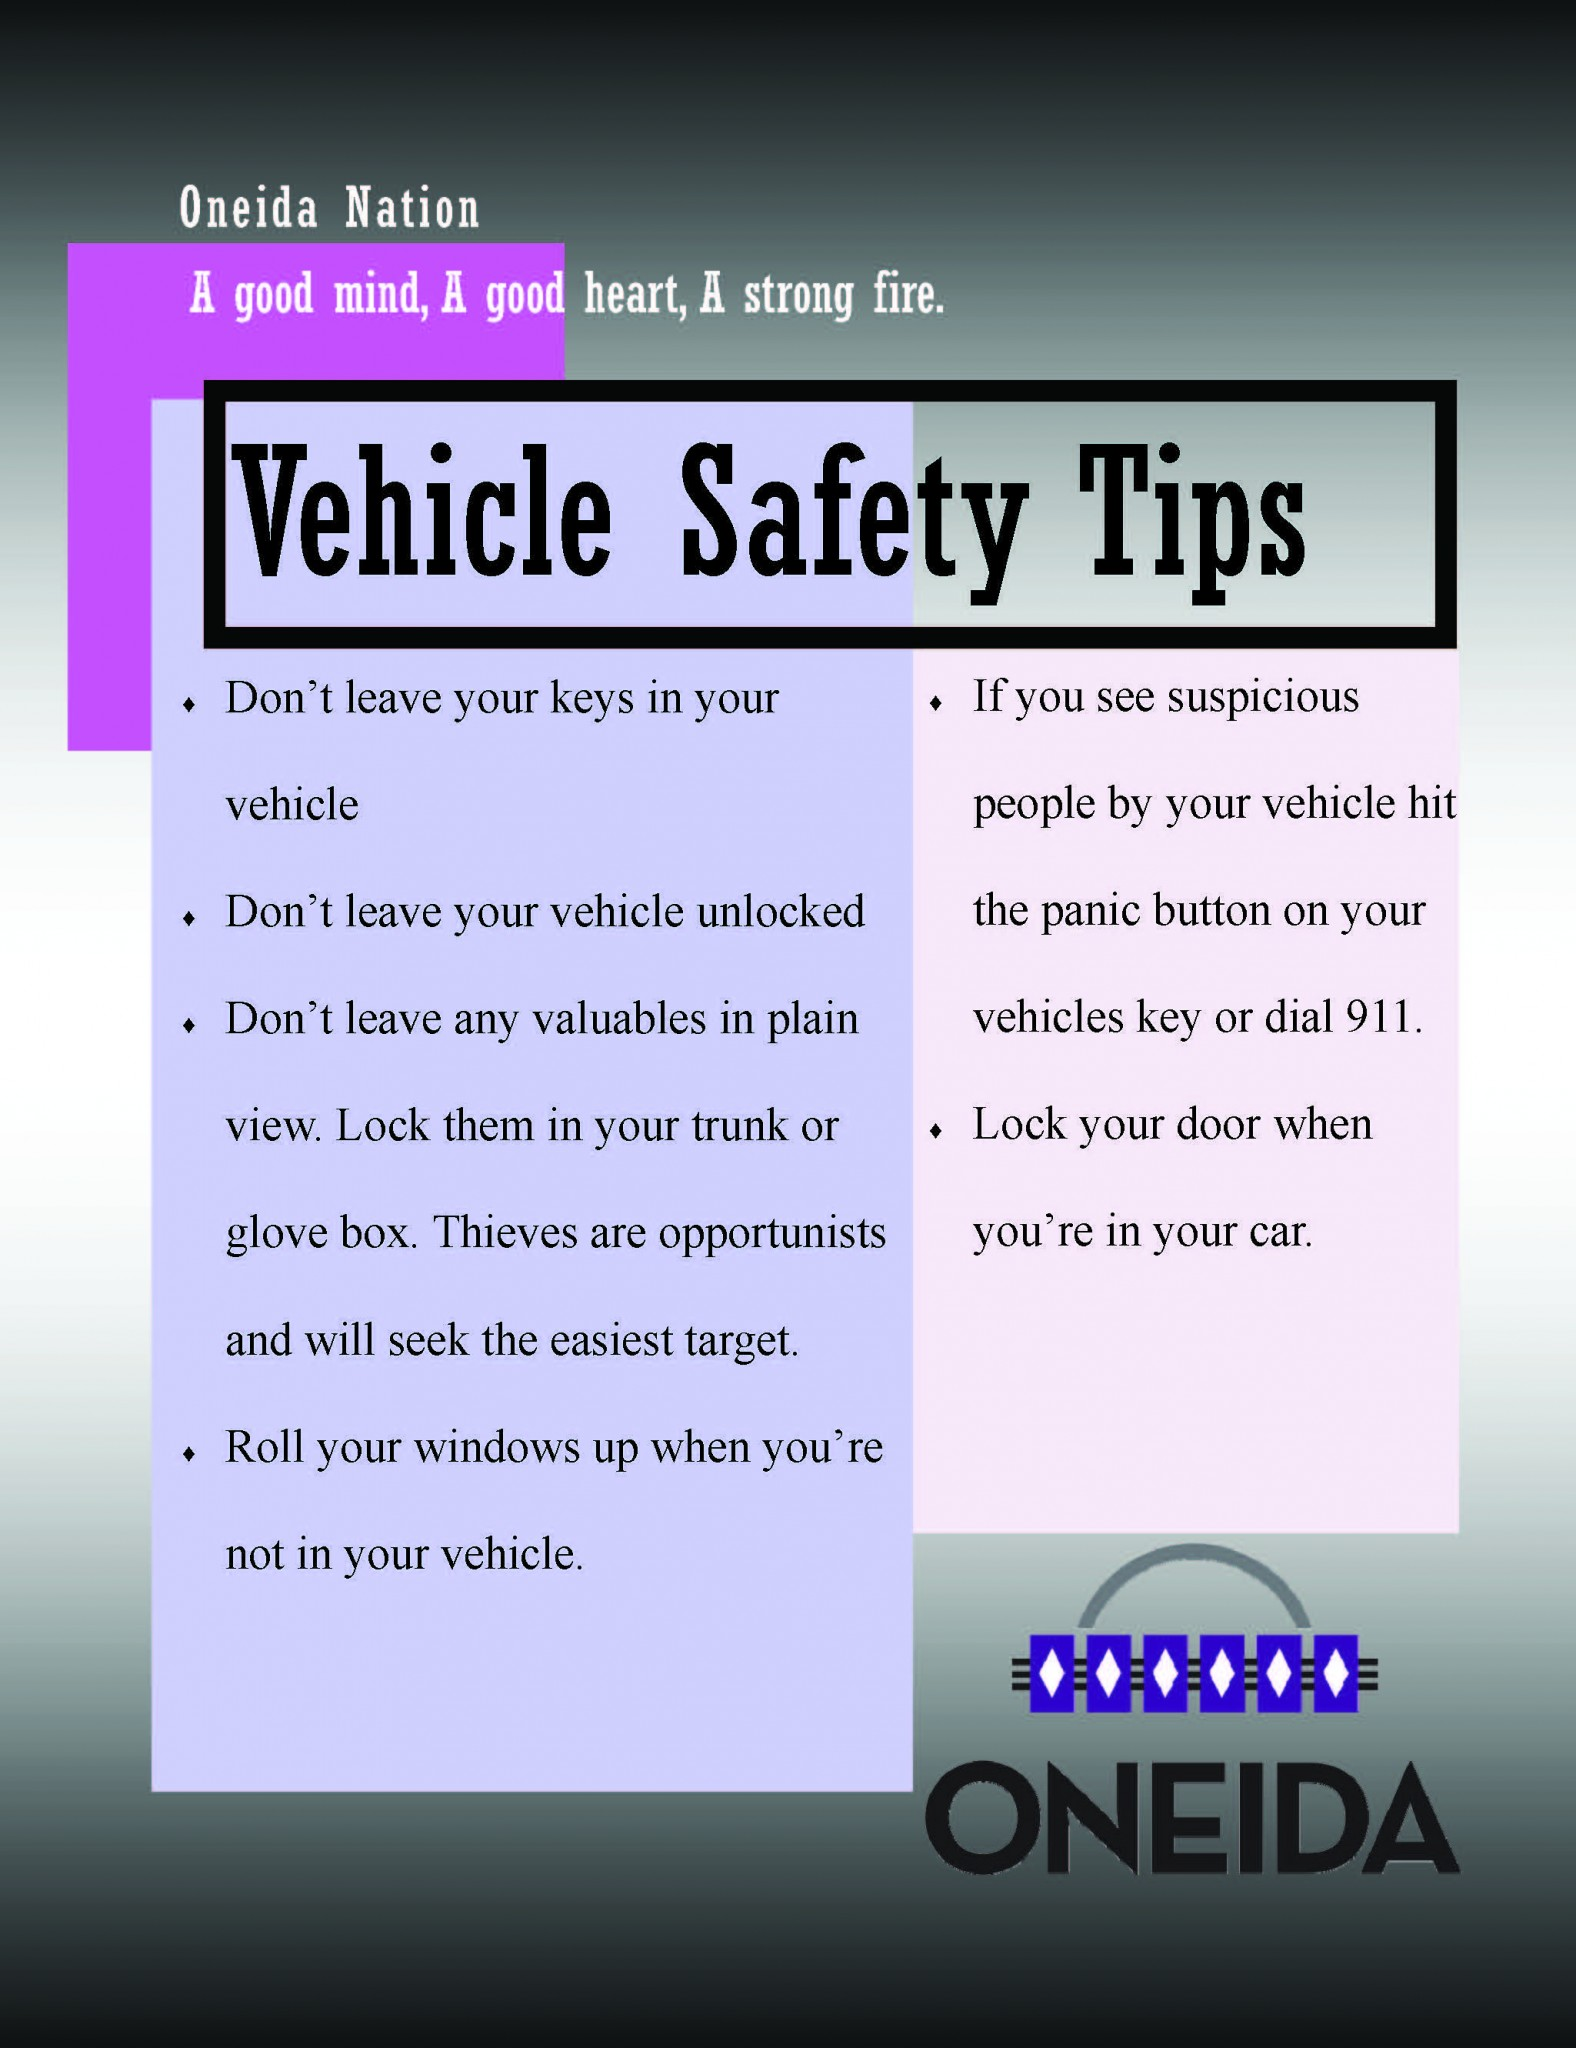 Pin by Oneida Nation of Wisconsin (Official) on Oneida Police Dept (OPD) Safety Tips | Pinterest